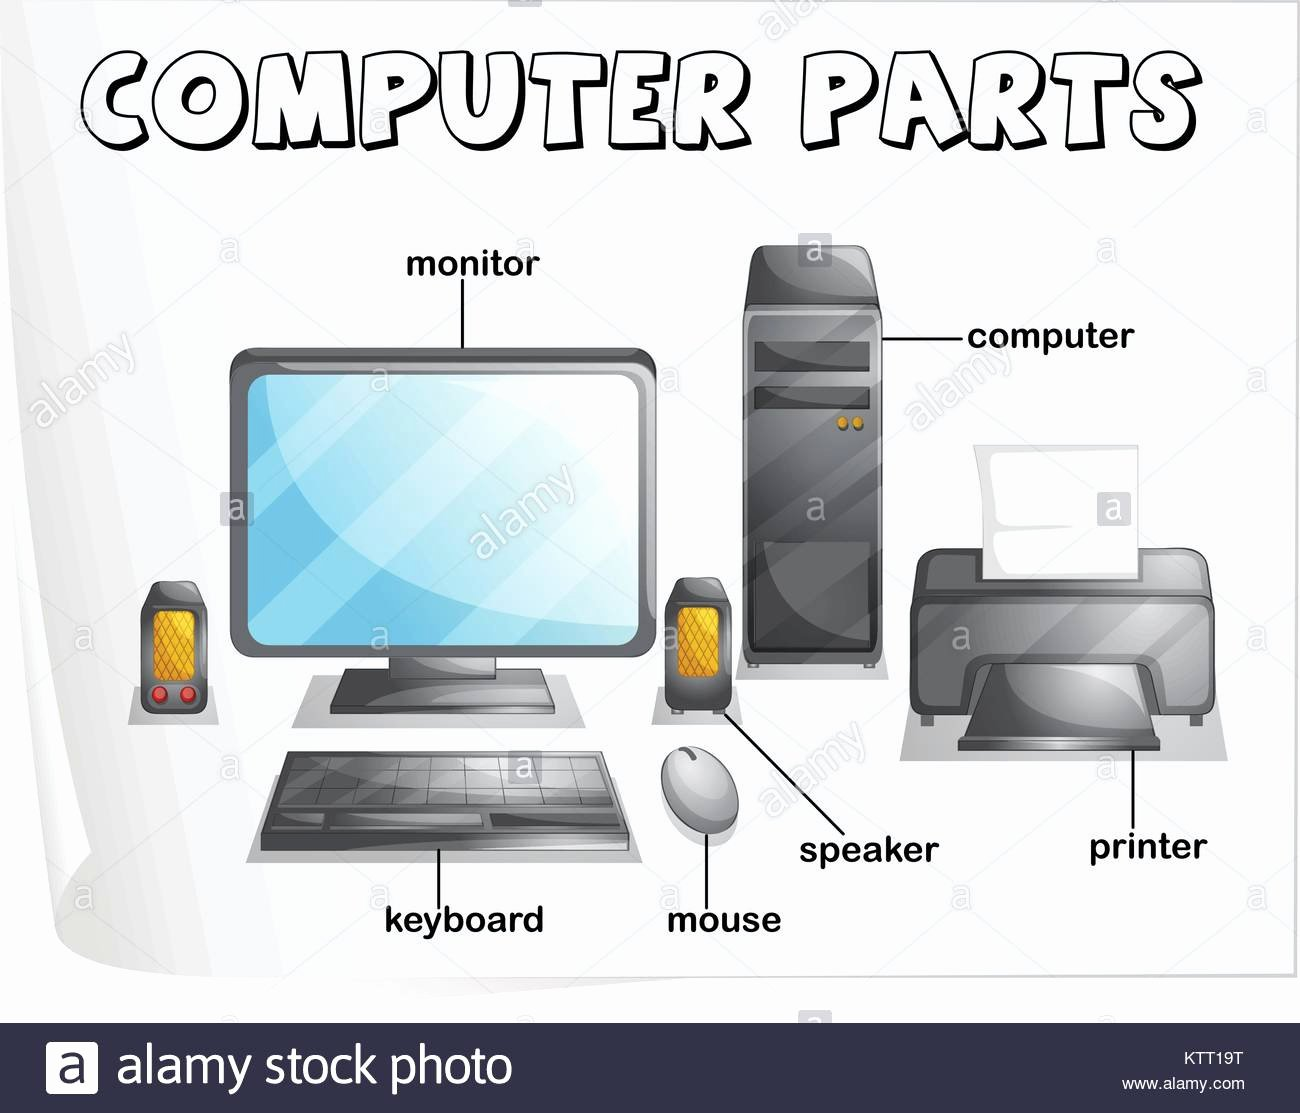 50 Parts Of A Computer Worksheet